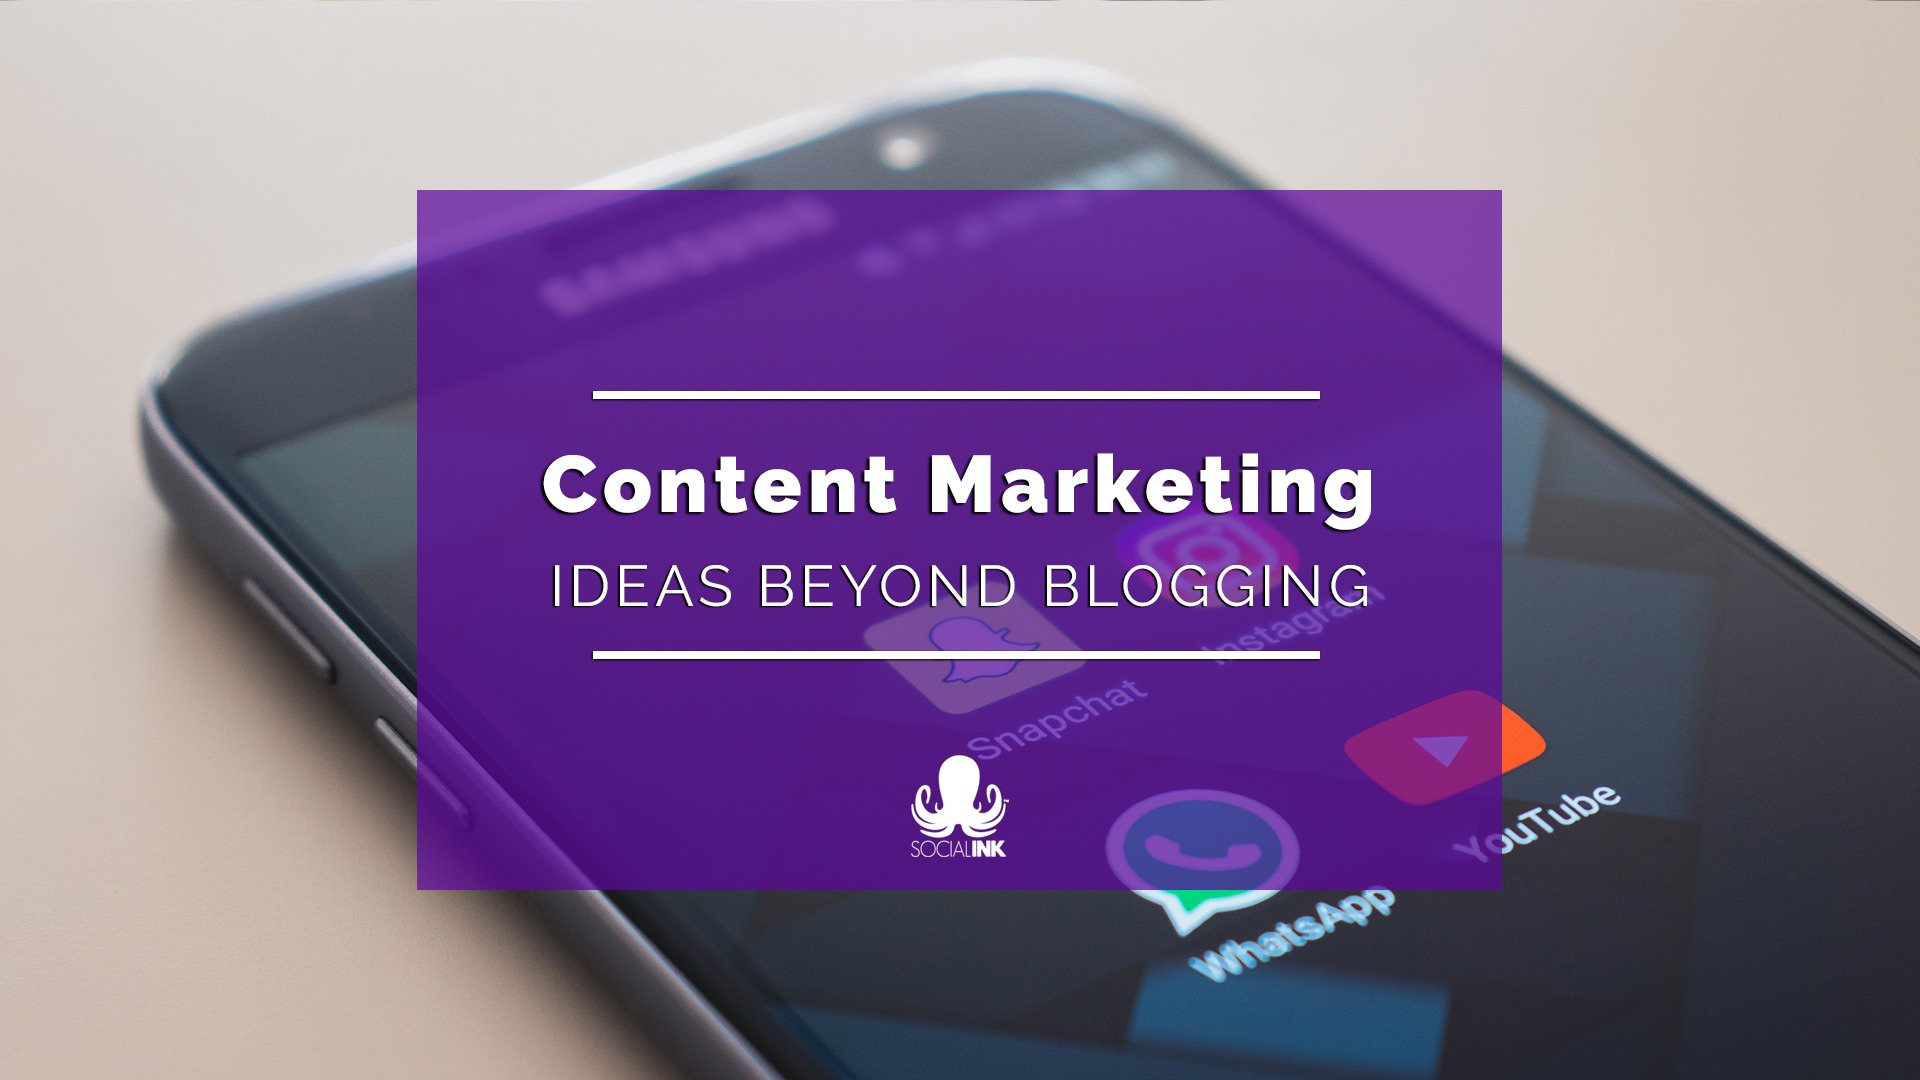 Content Marketing Ideas: Moving Beyond Blogging